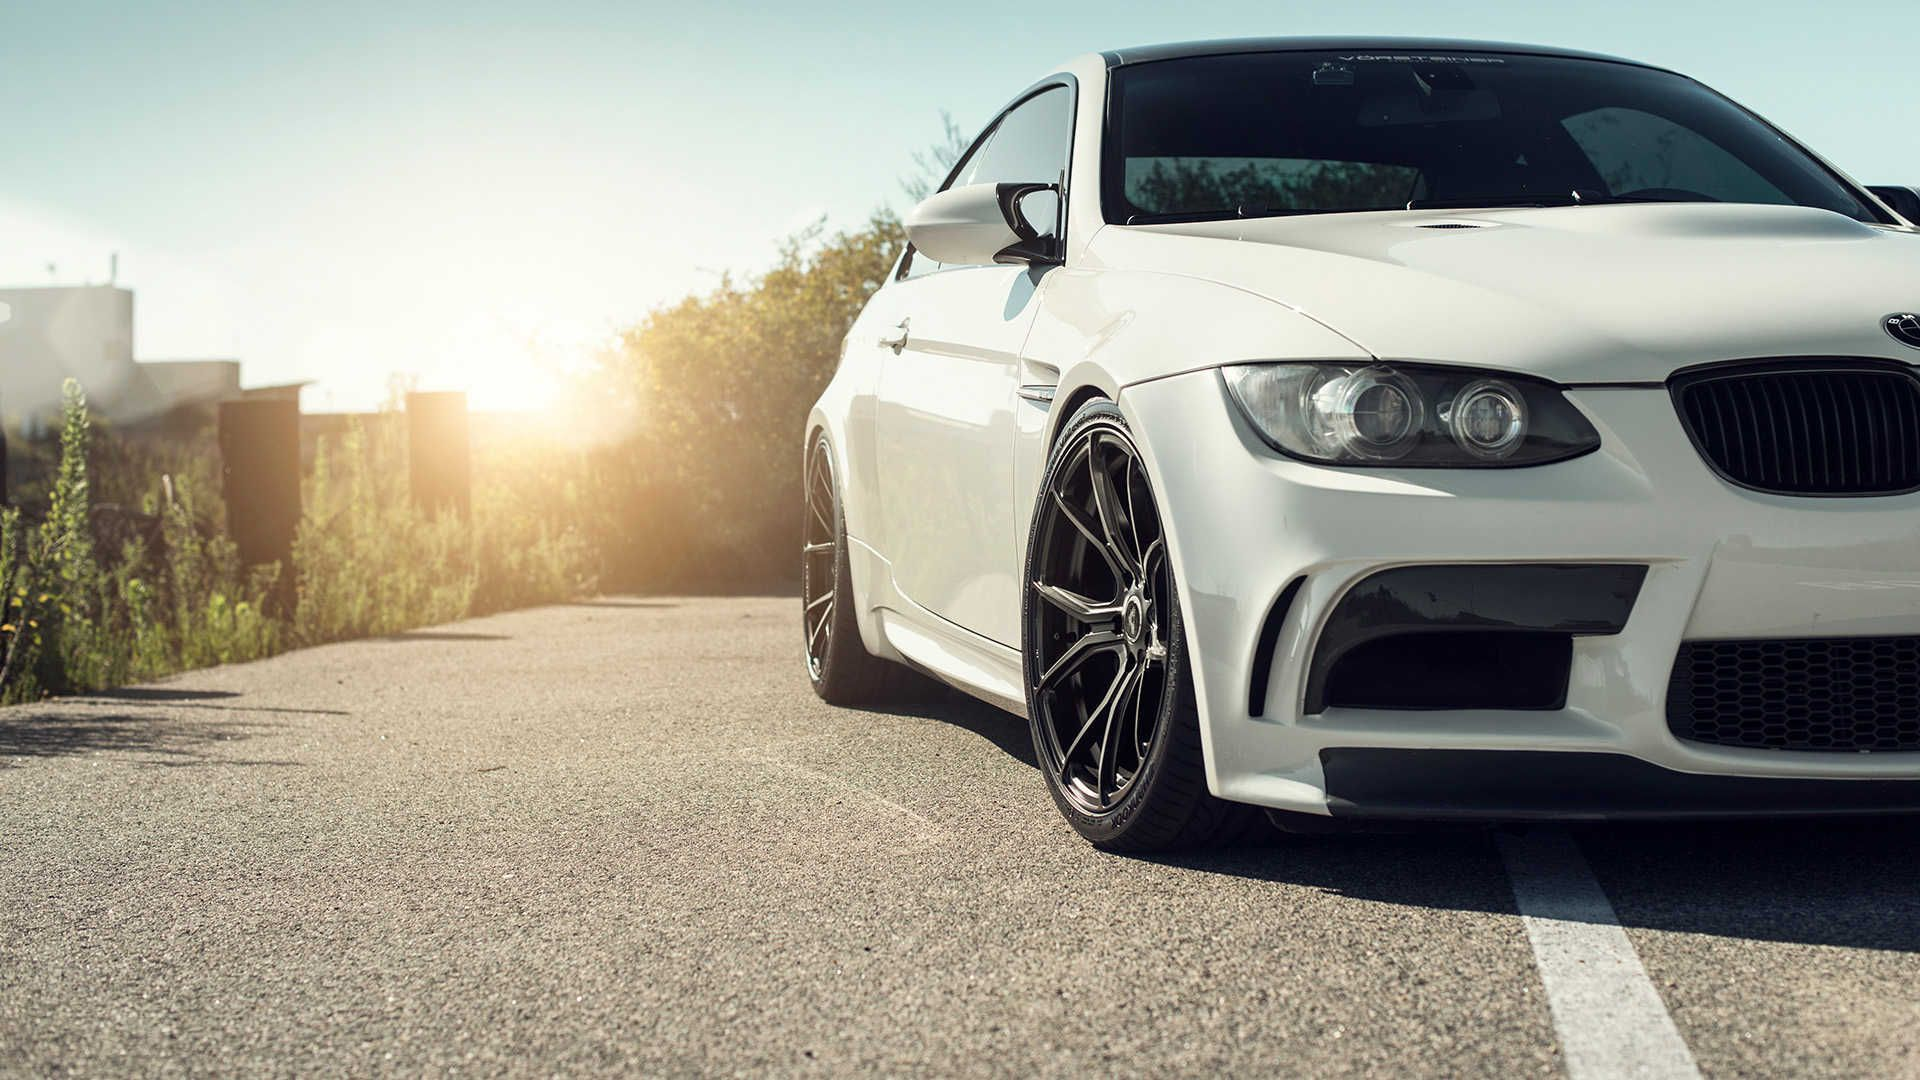 best BMW images on Pinterest Bmw cars Cars and Dream cars